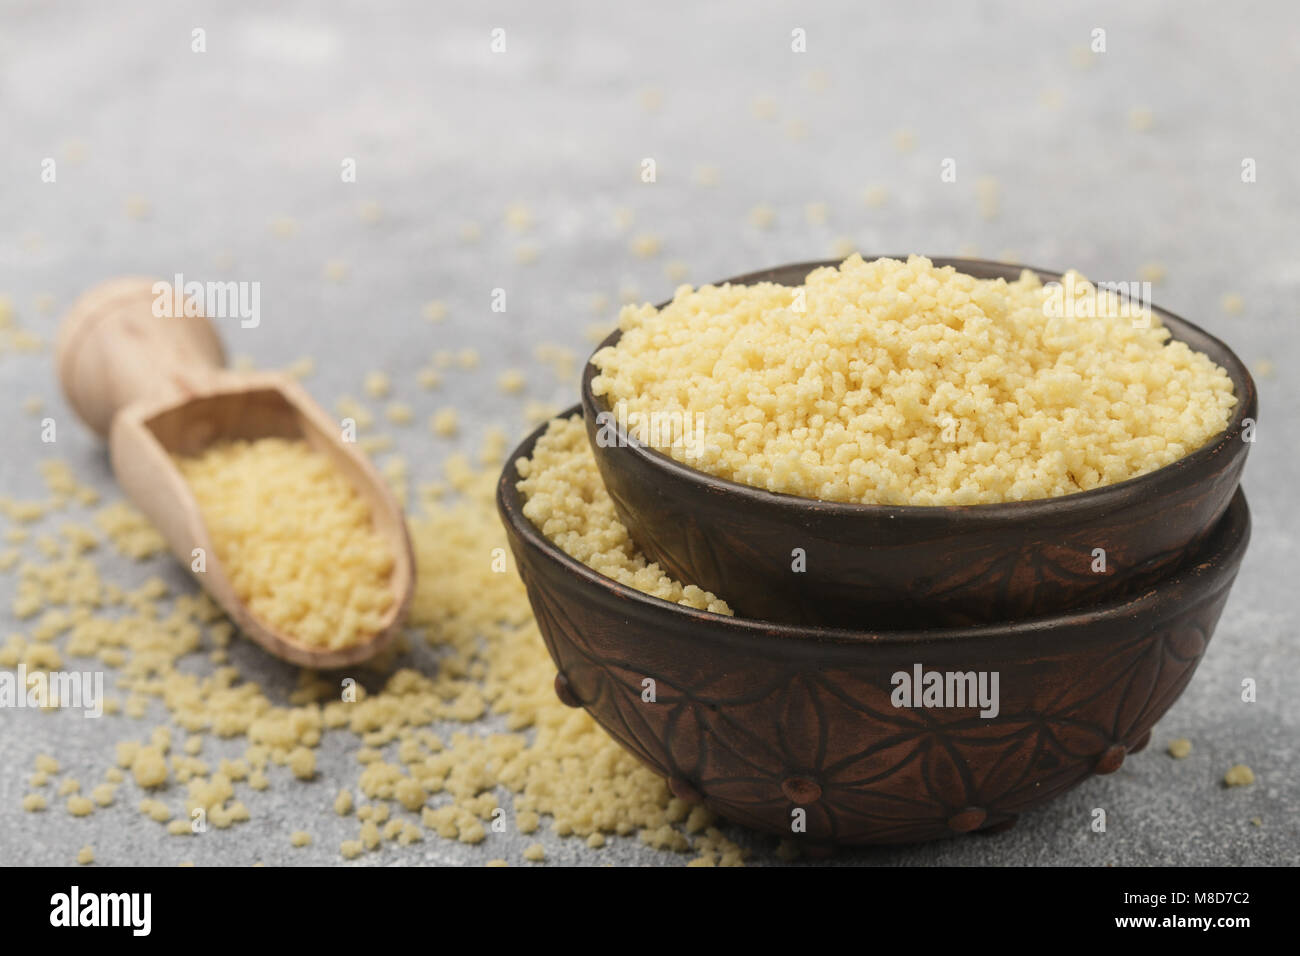 Raw organic couscous in a bowl on the table. Selective focus - Stock Image